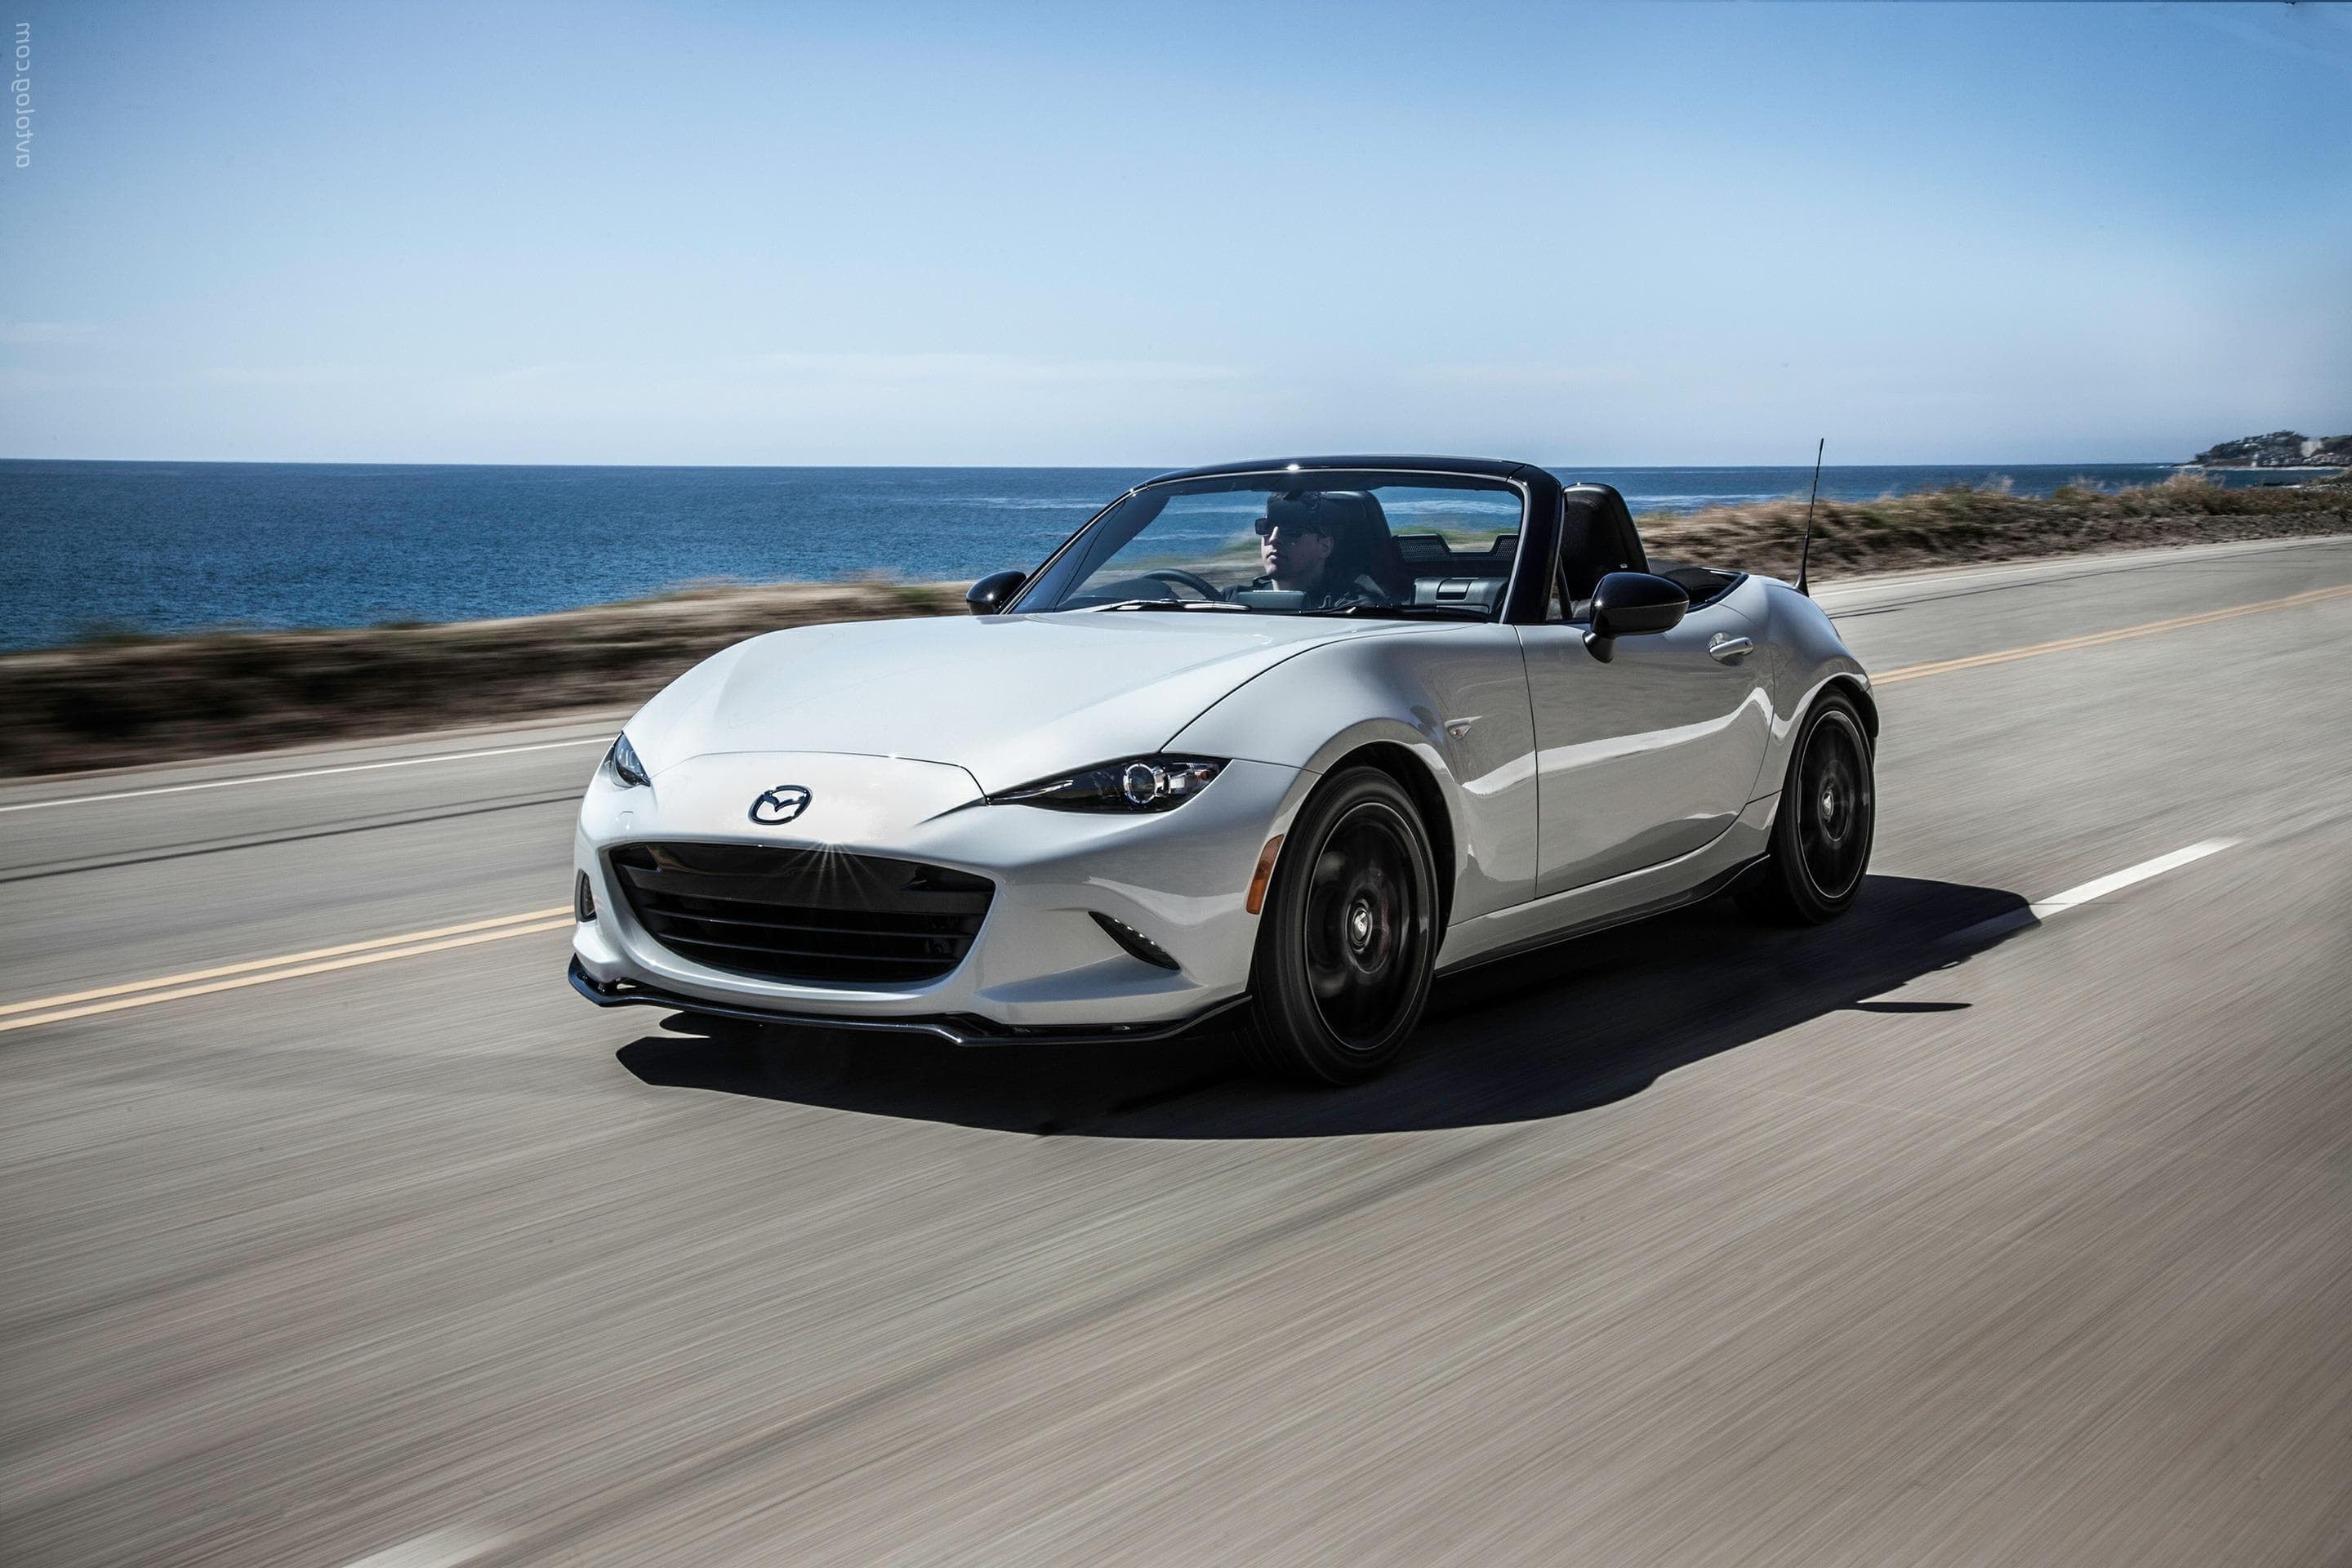 Mazda Mx 5 Wallpapers Top Free Mazda Mx 5 Backgrounds